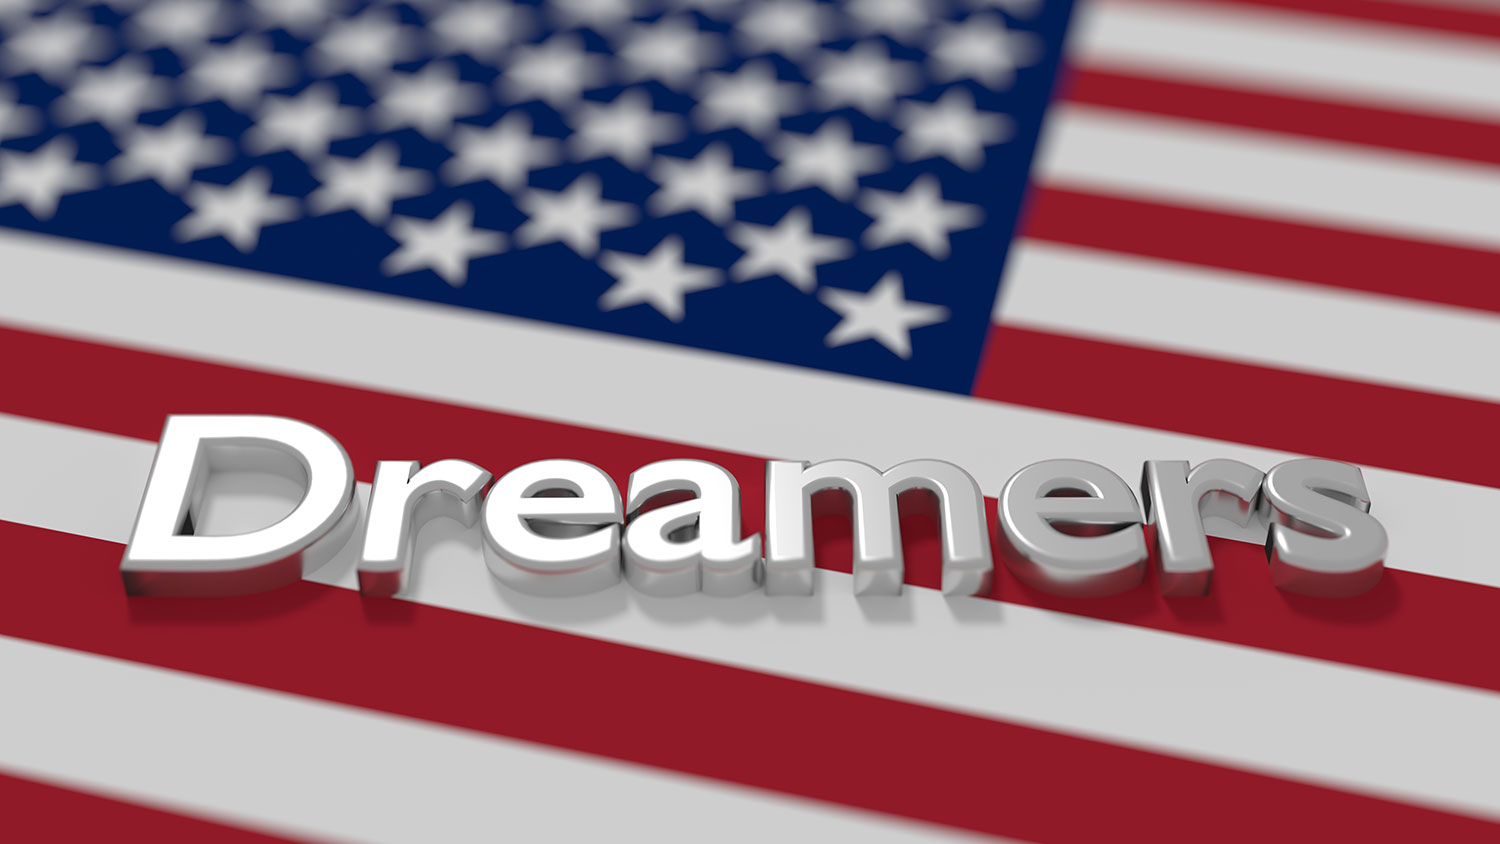 Options For DACA Recipients That Lead To A Green Card Without Leaving The U.S.